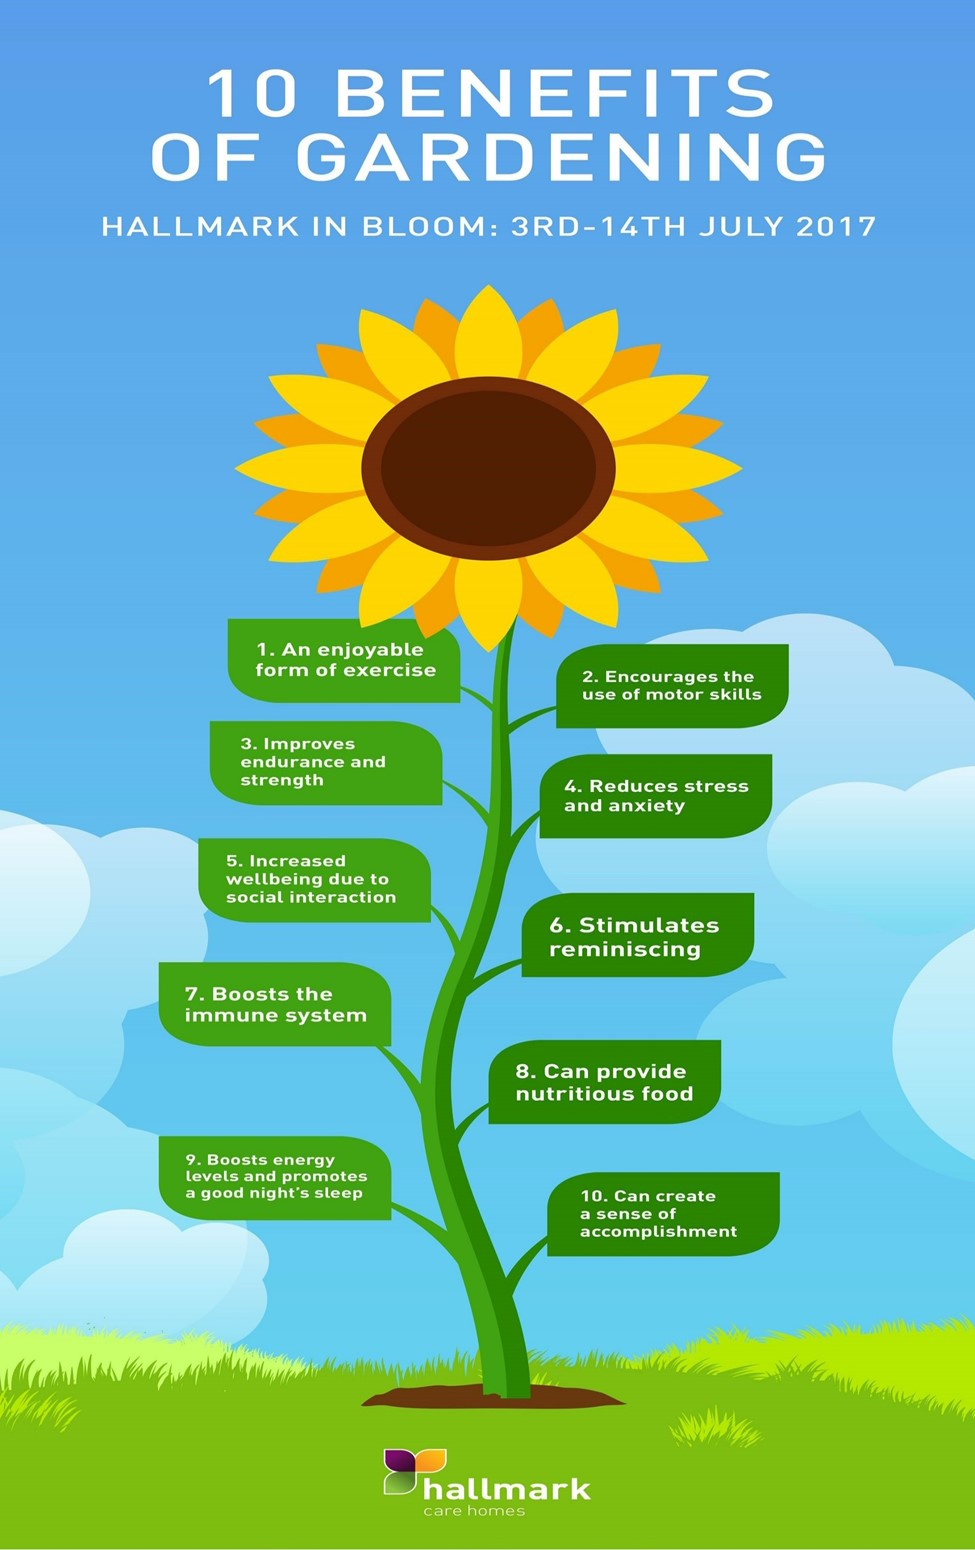 10 Benefits of Gardening